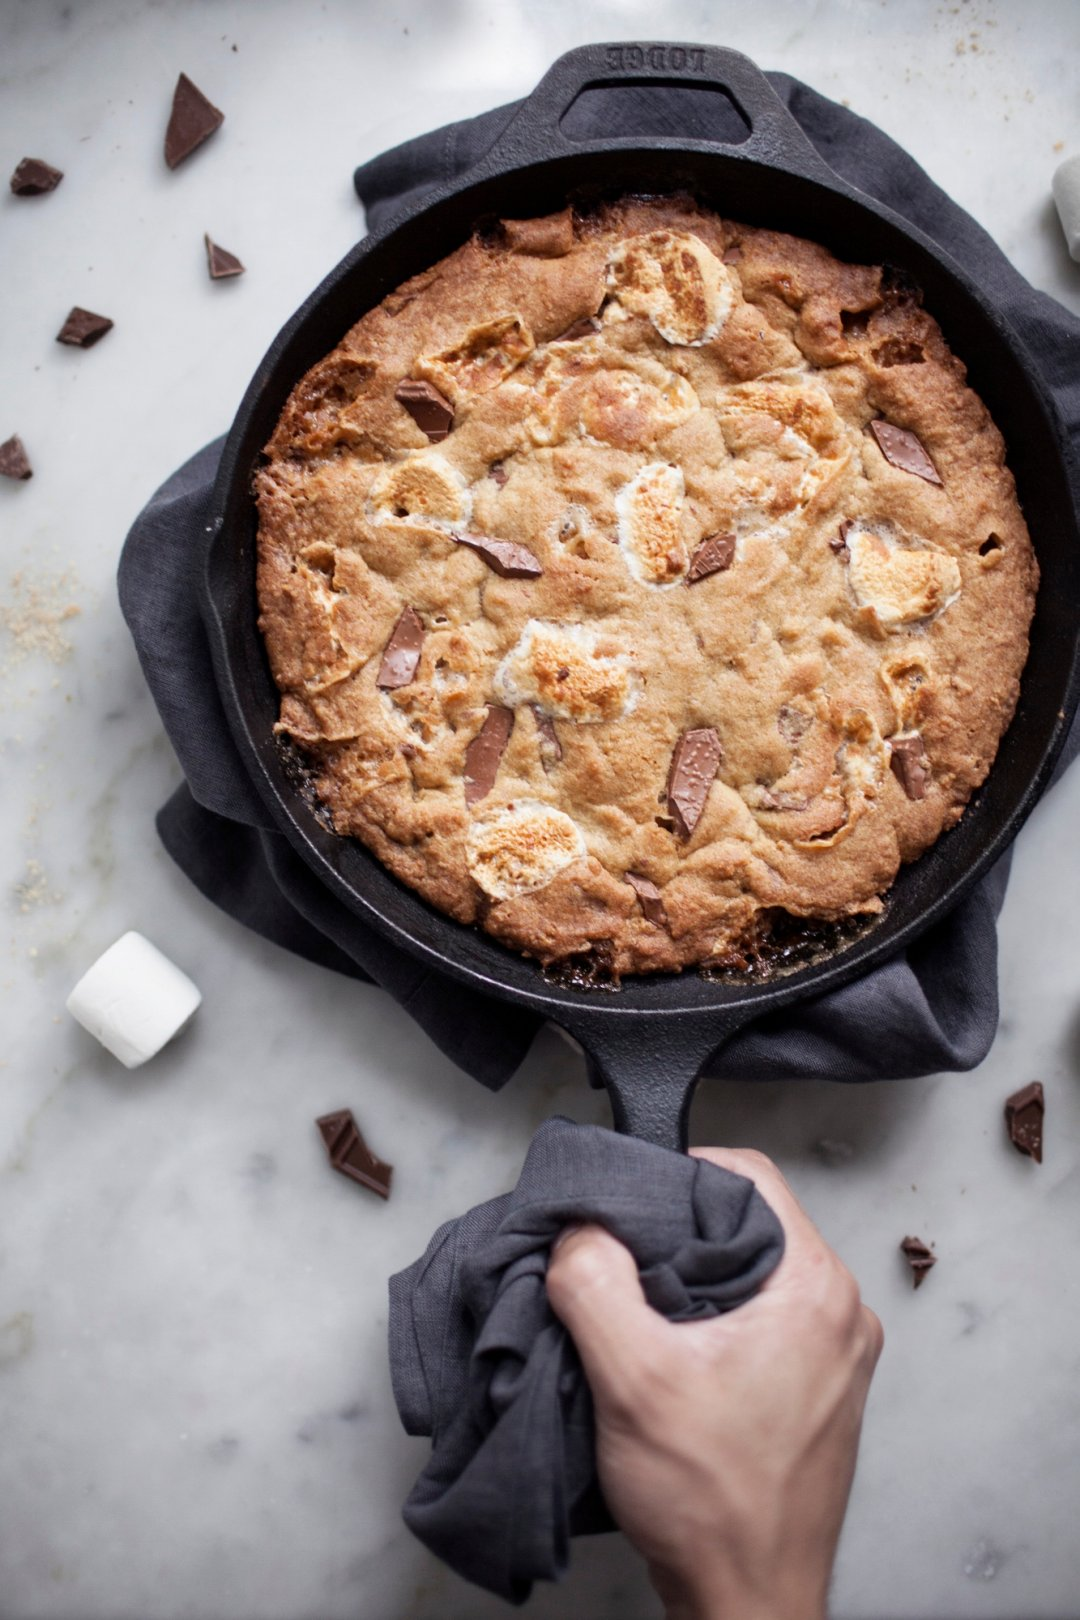 Hand holding skillet with cookie